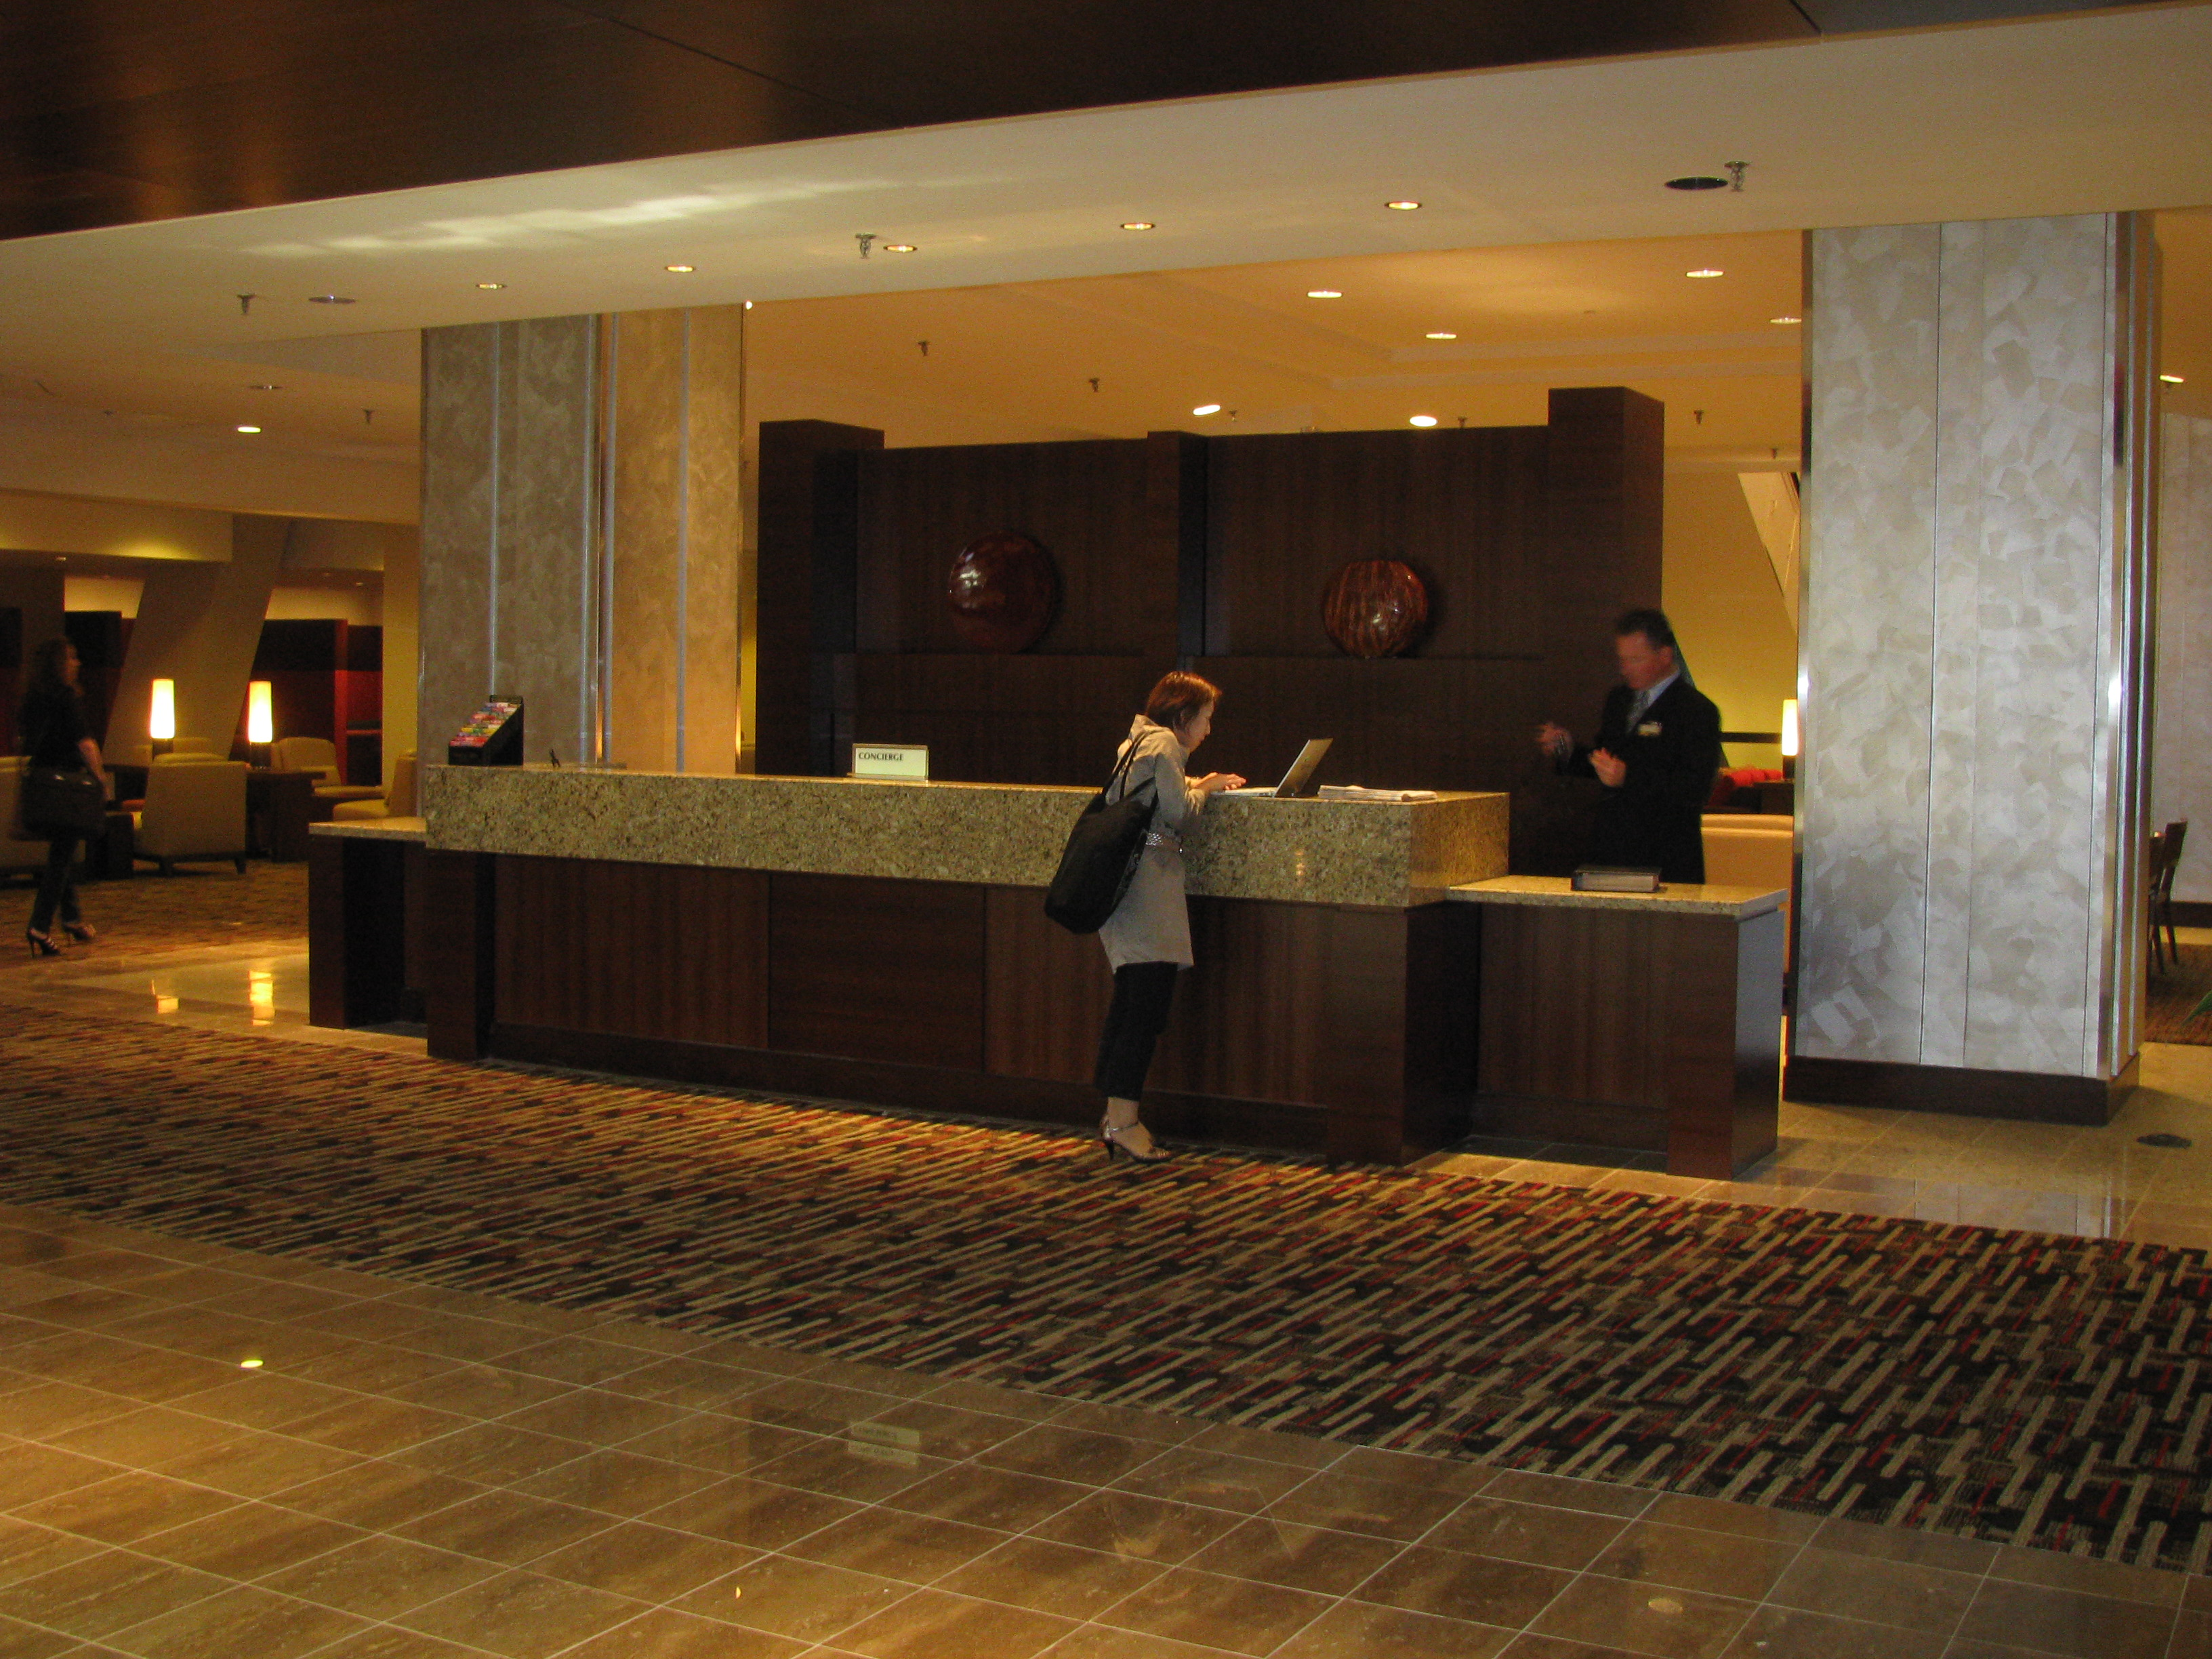 the concierge desk is warm and inviting with the new look - Concierge Desk Design